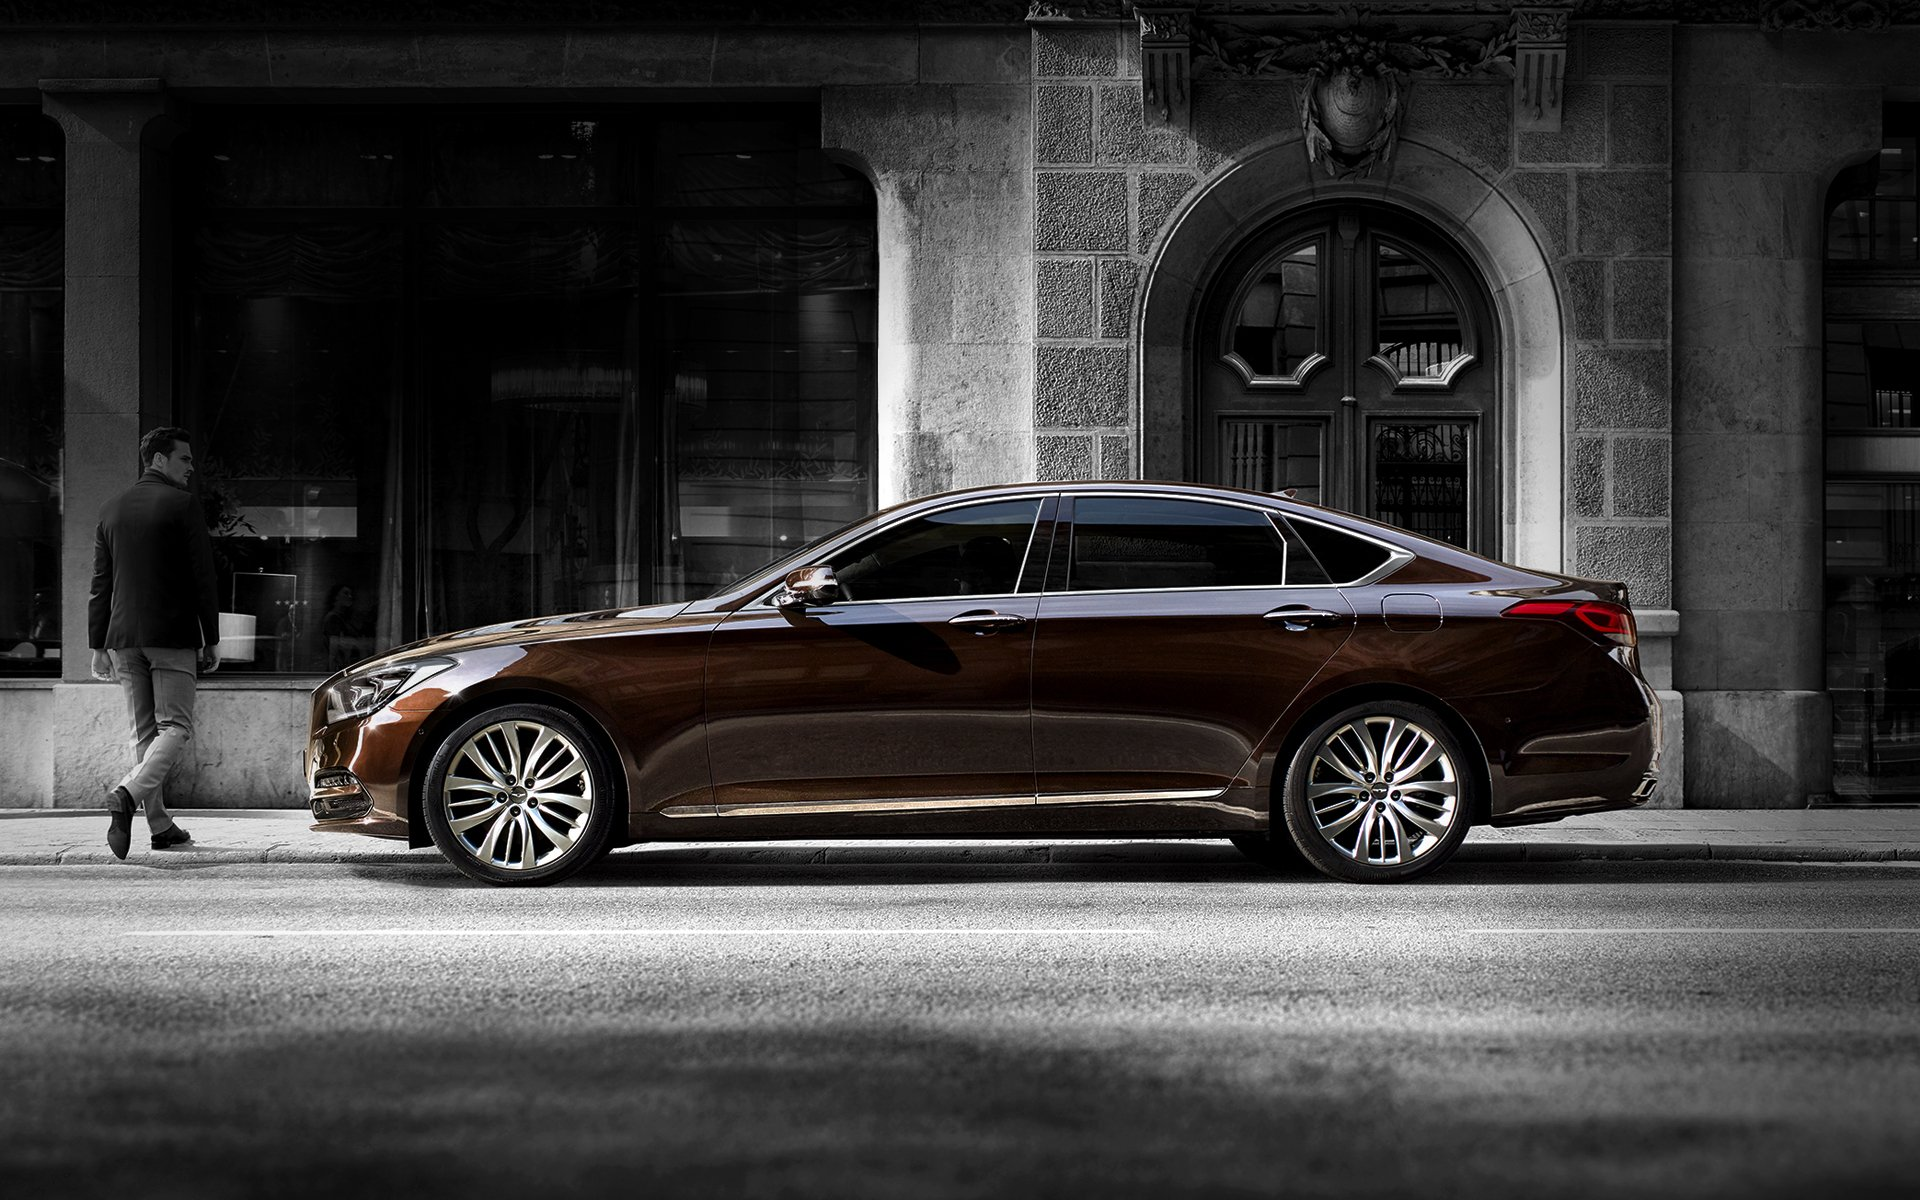 GENESIS G80 Design Features - PERFECT PROPORTION